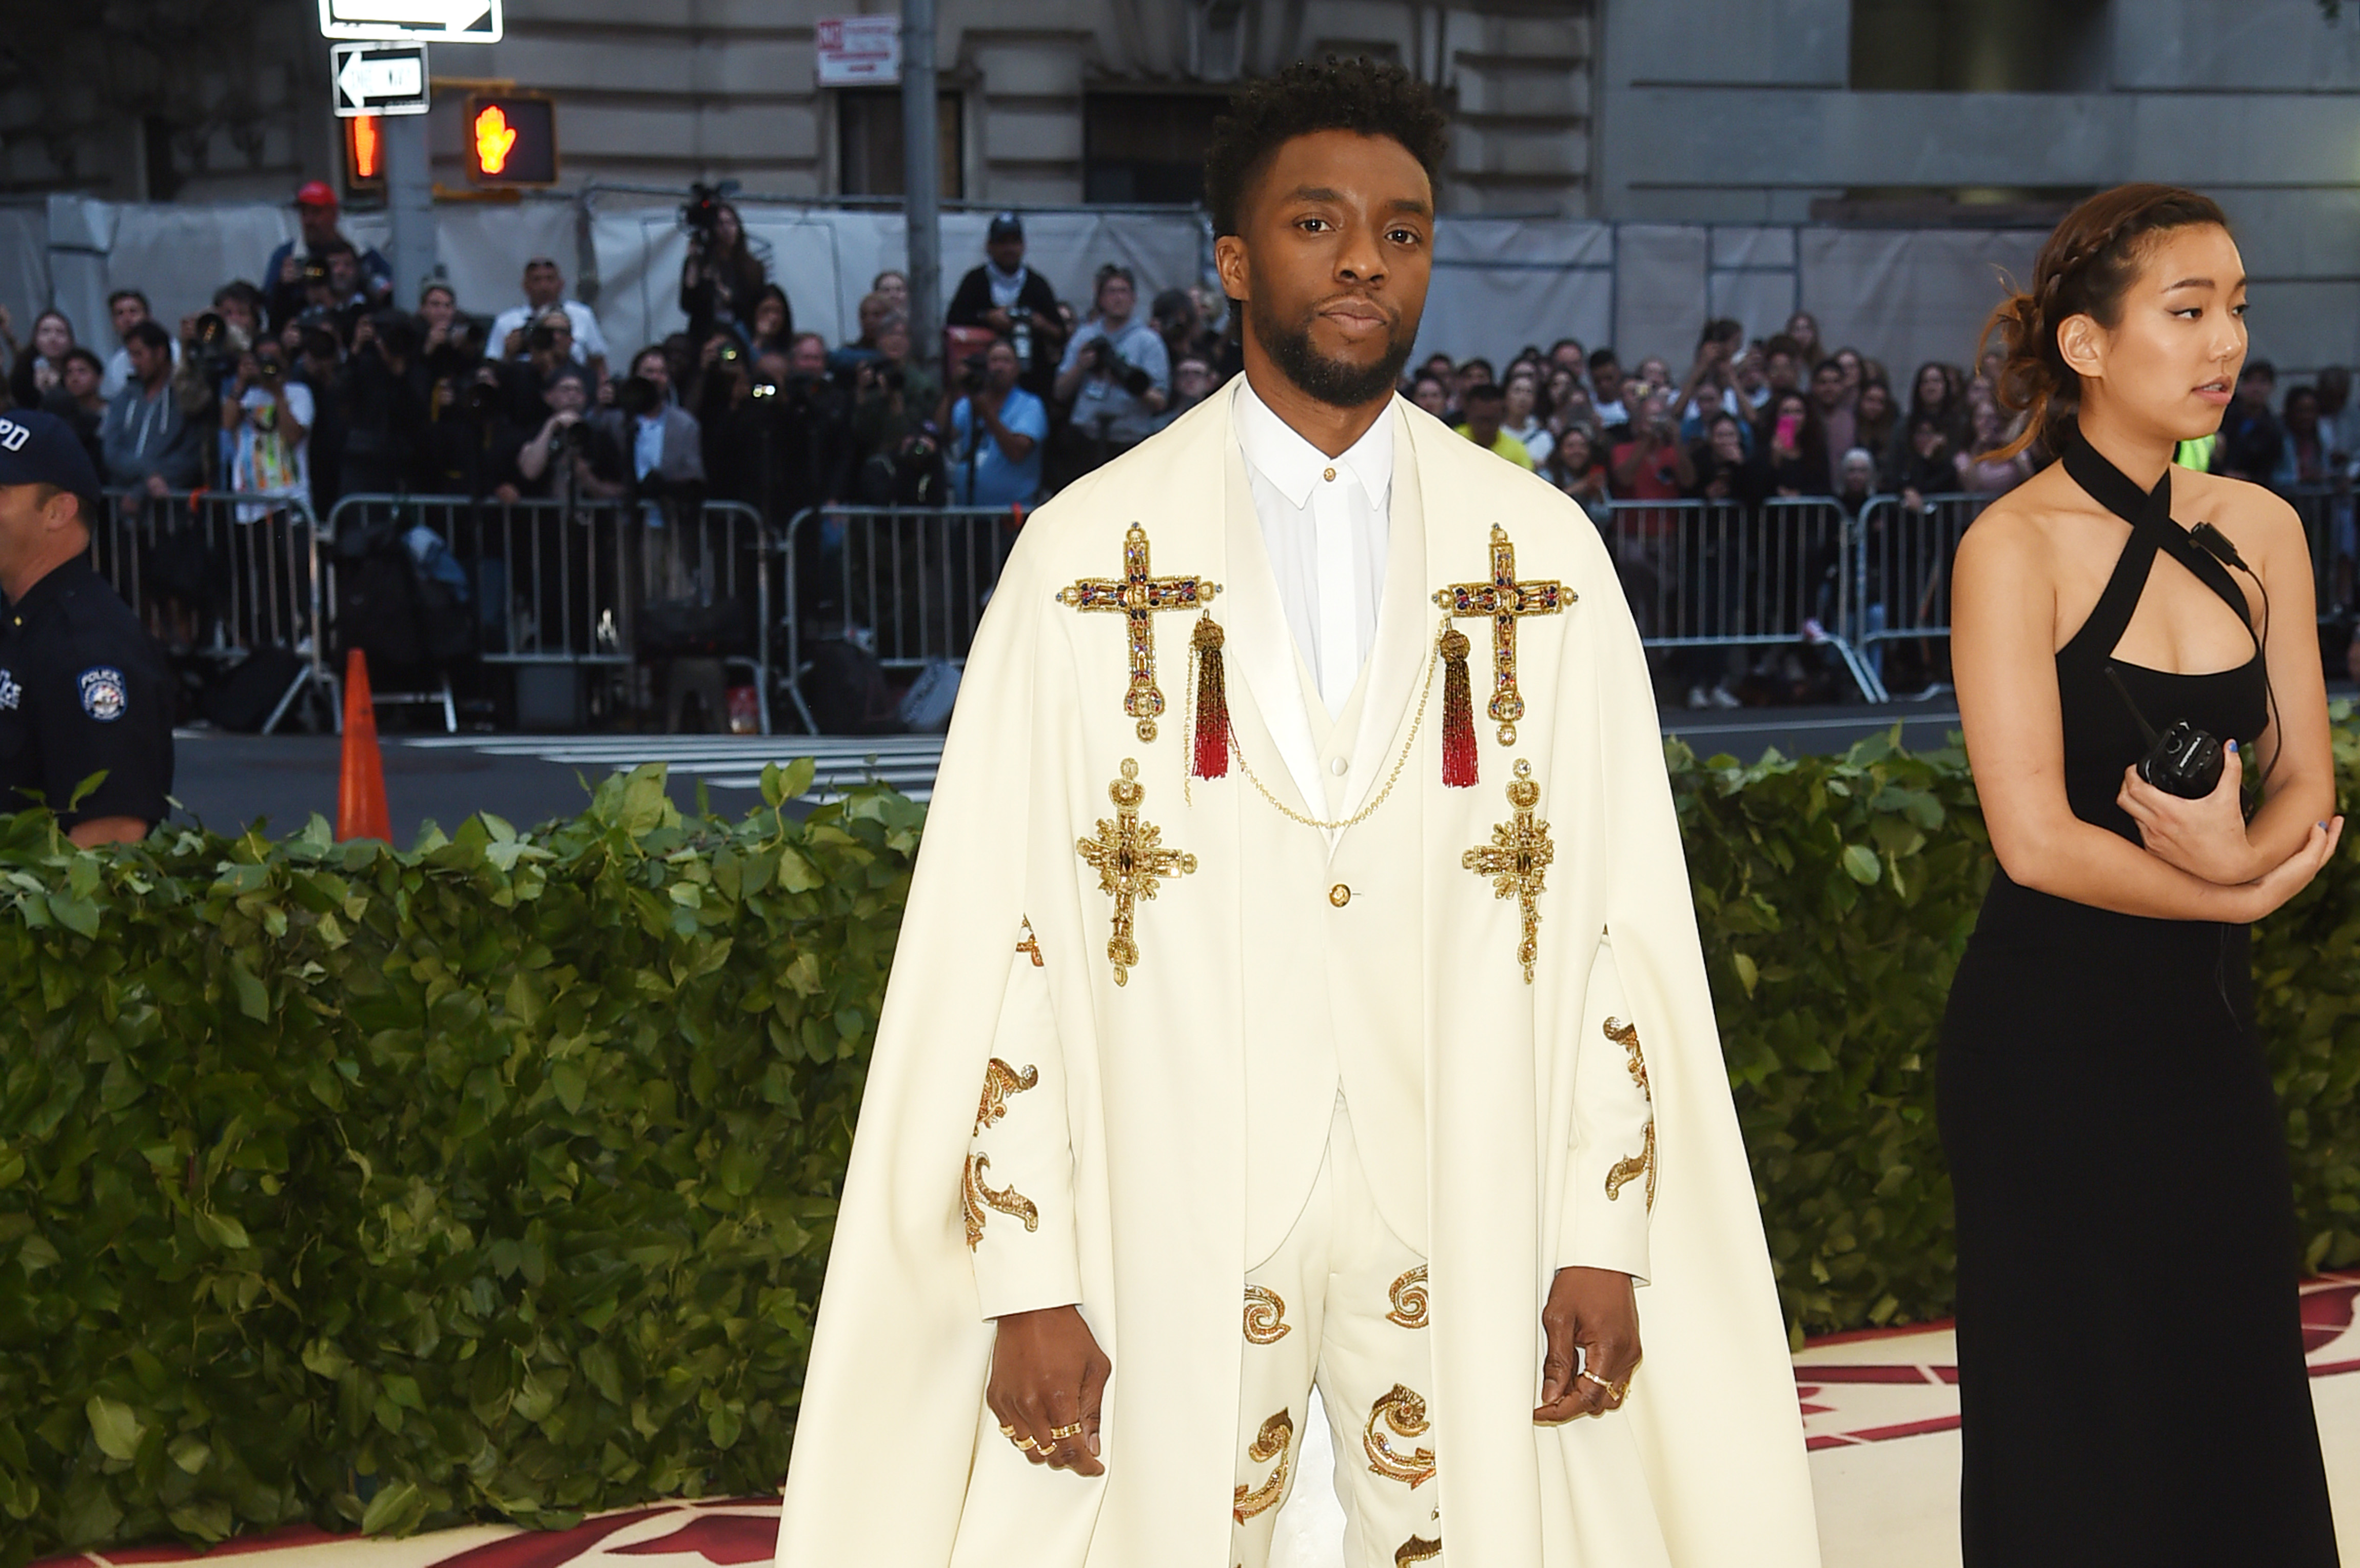 Chadwick Boseman attends the Heavenly Bodies: Fashion & The Catholic Imagination Costume Institute Gala at The Metropolitan Museum of Art on May 7, 2018 in New York City.